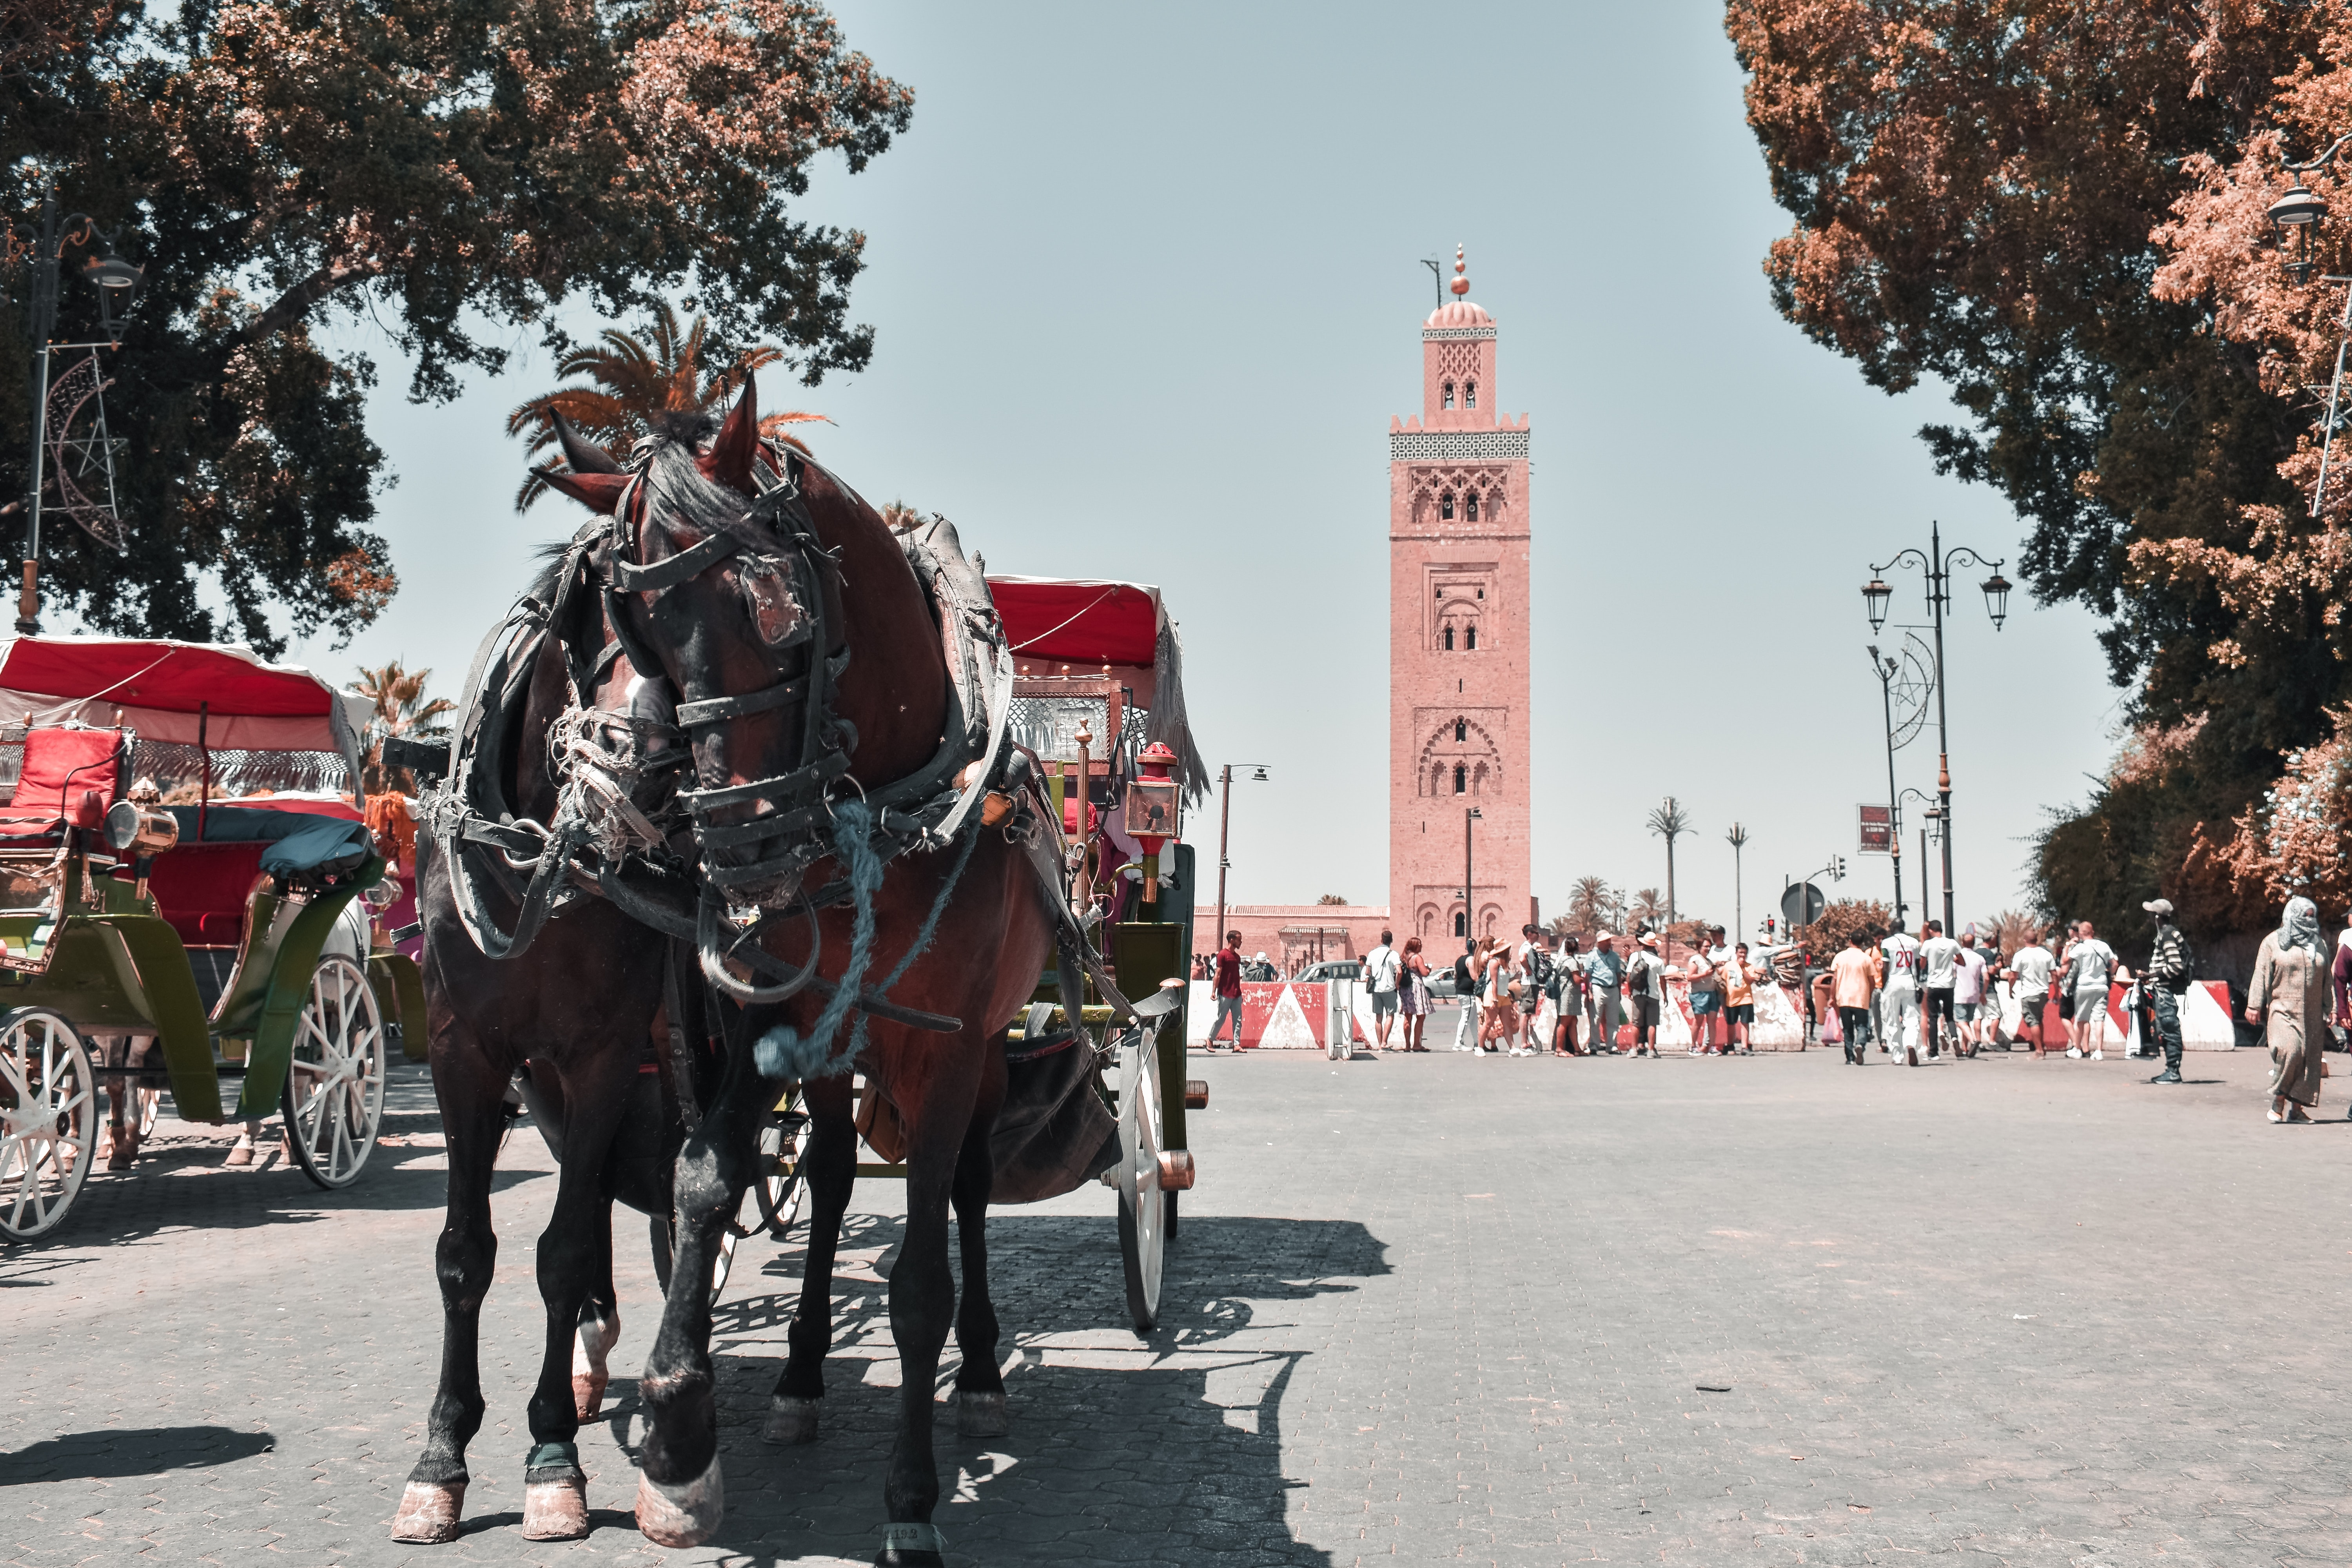 Is it safe to live in Morocco?